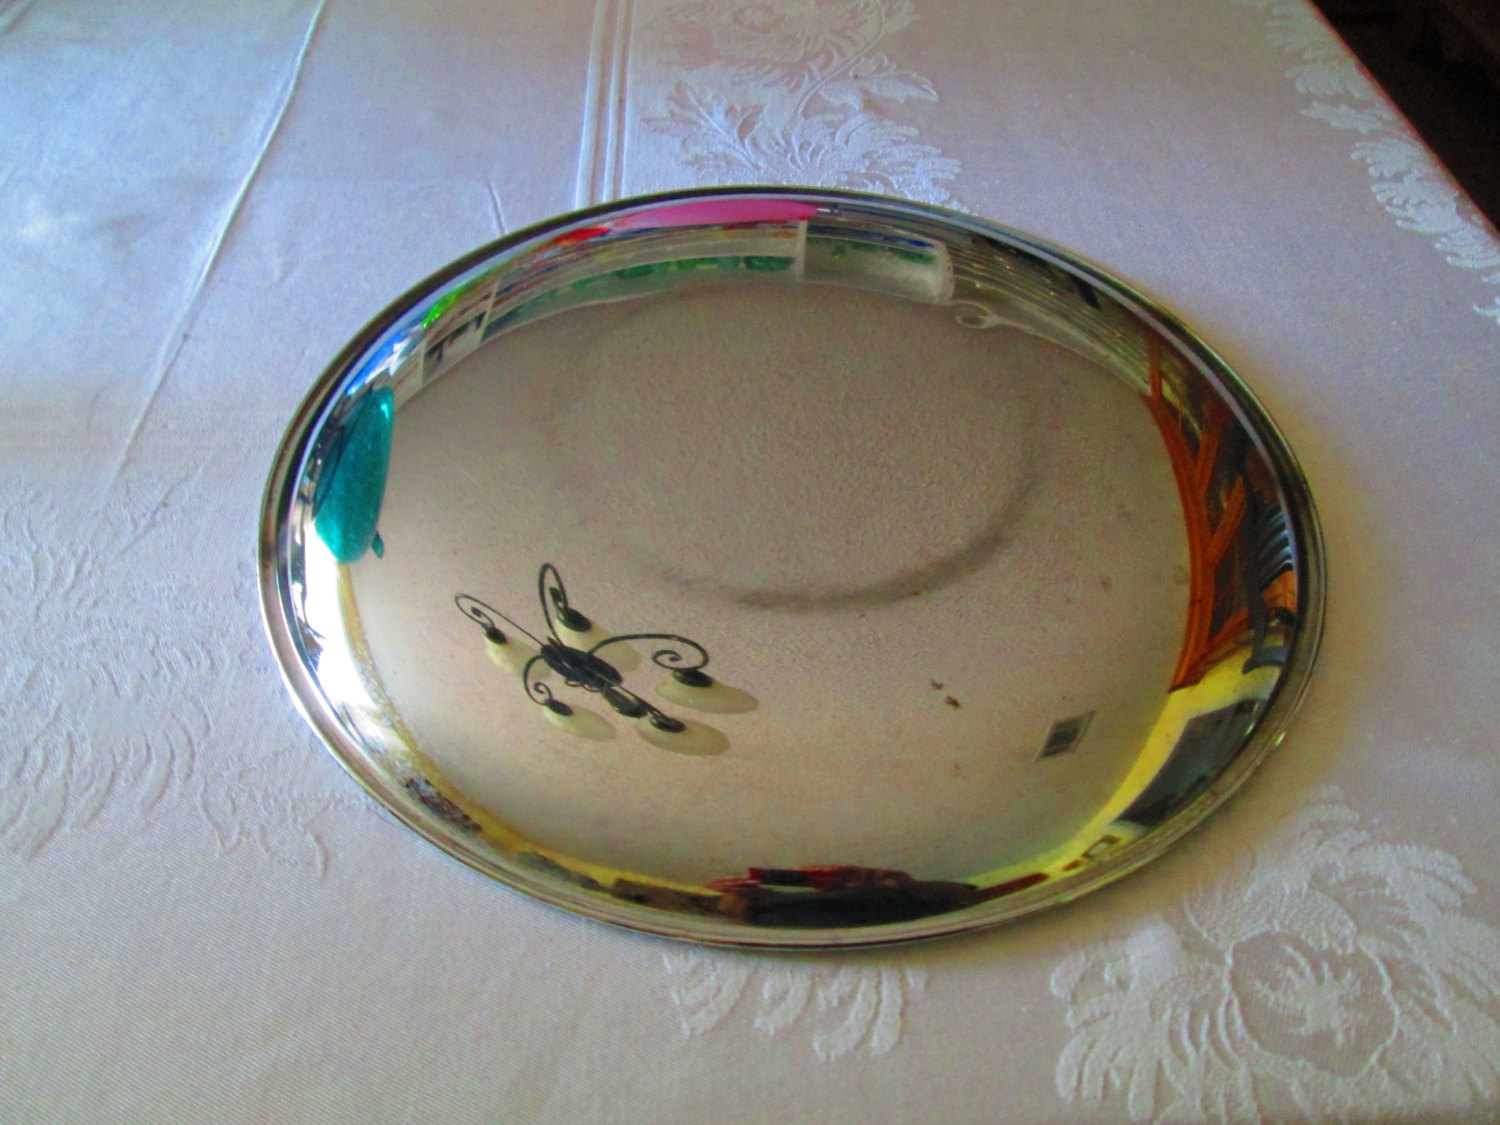 Vintage Fantastic Mid Century Modern Large Serving Tray Chrome Tray Platter Serving Tray Decorative Carol S True Vintage And Antiques